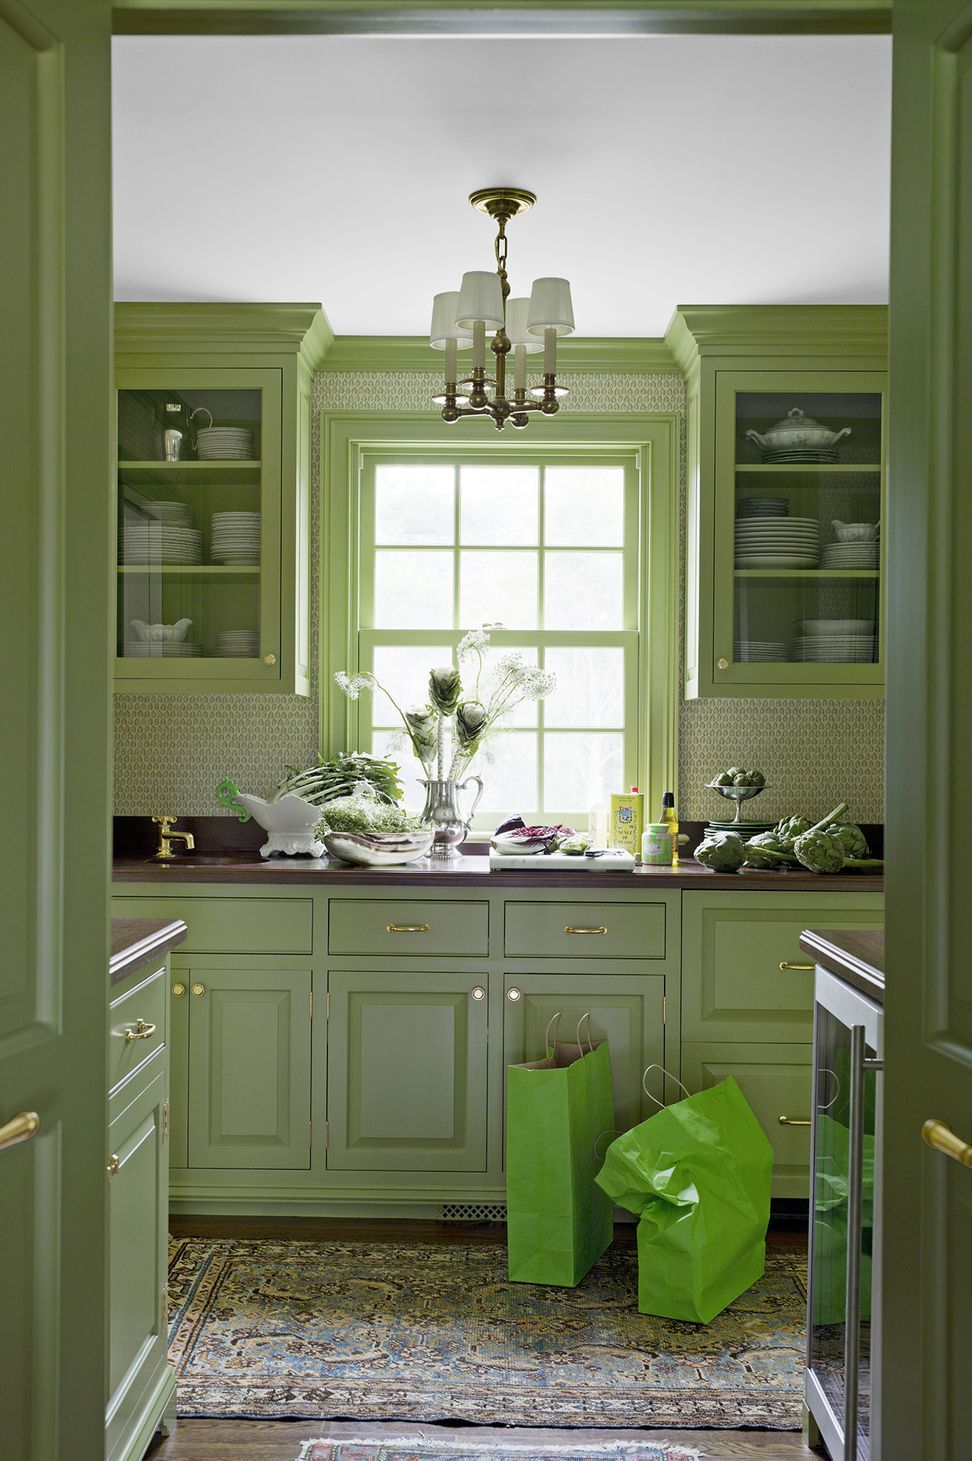 15 Green Kitchens You Re About To Envy Hard Green Kitchen Cabinets Trendy Kitchen Tile Green Countertops